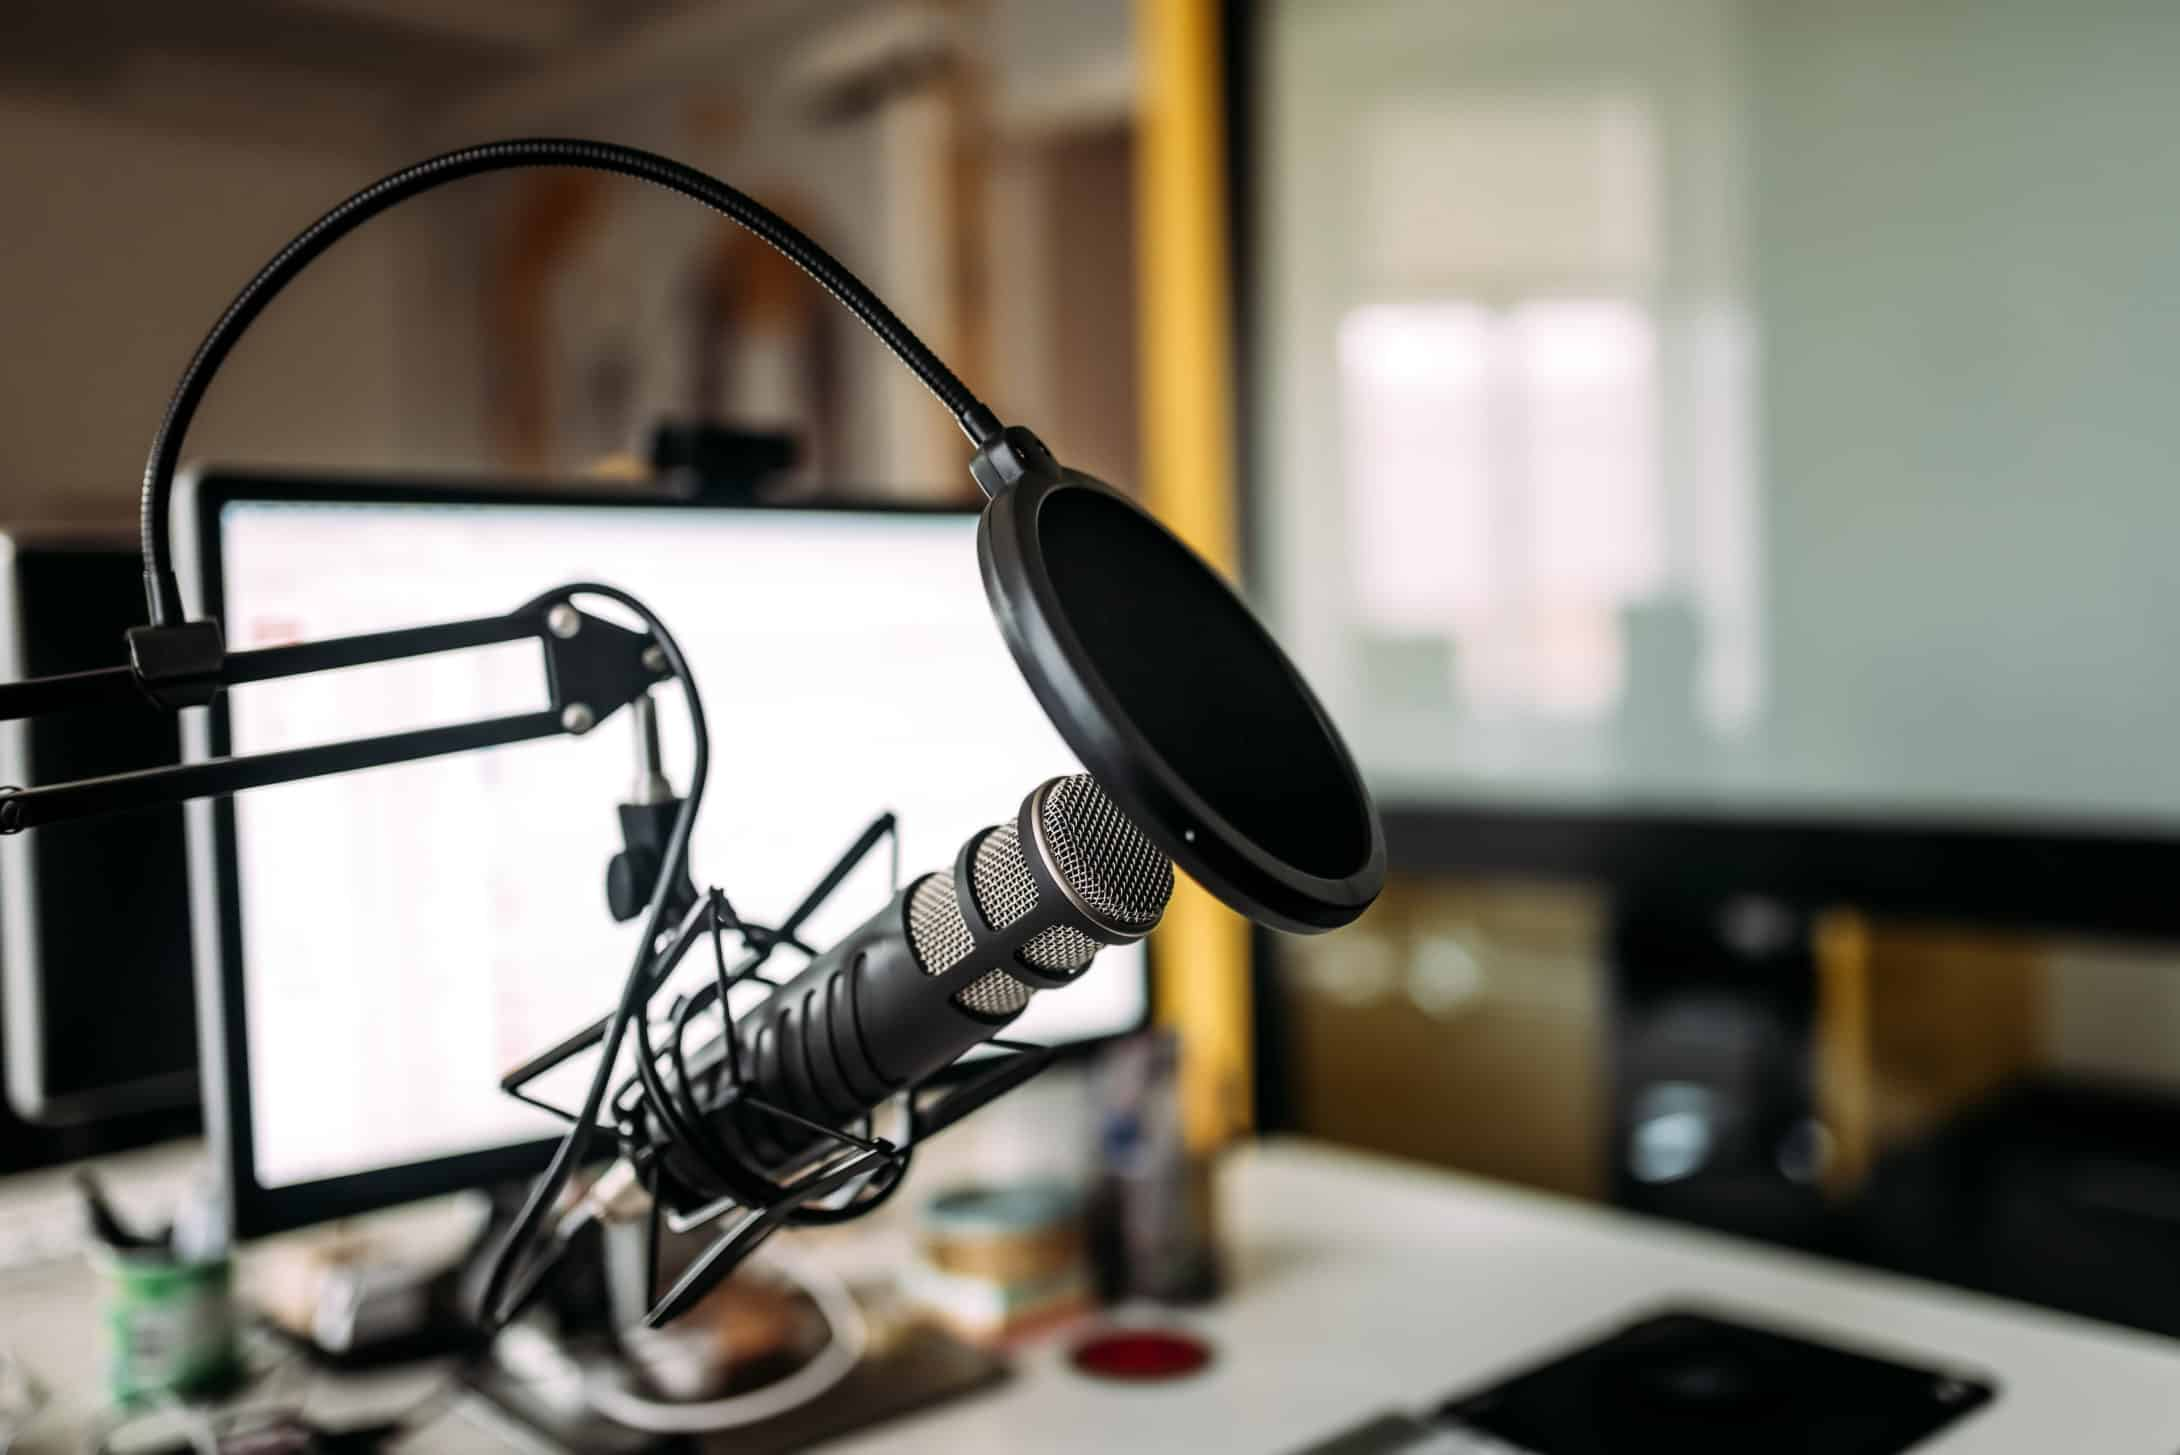 Podcast studio with microphone and computer